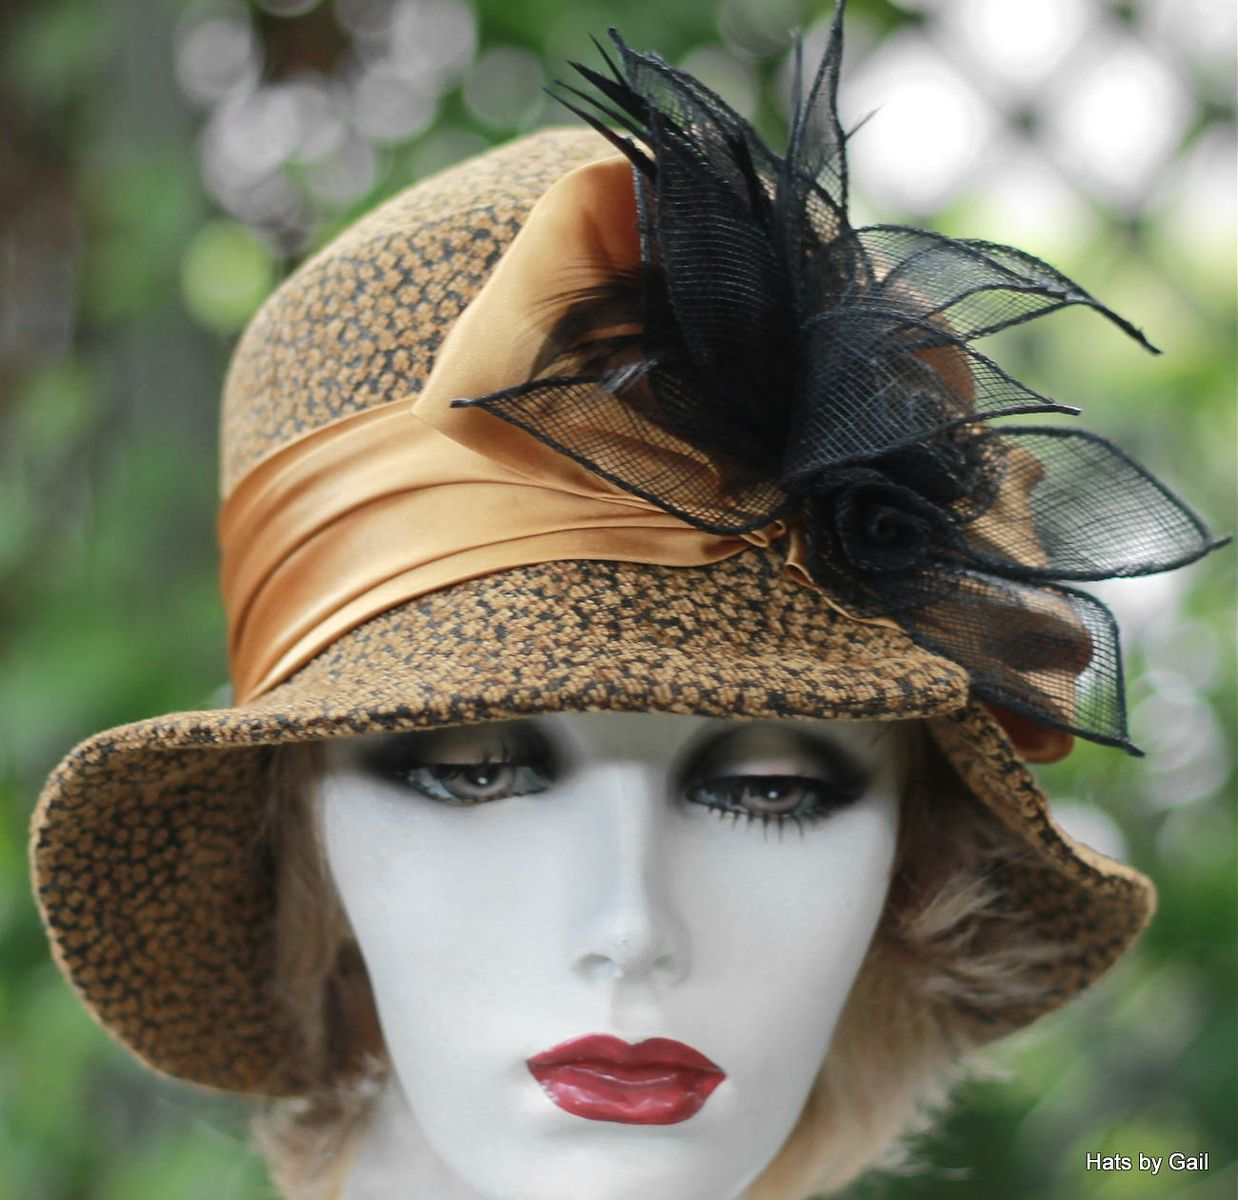 Buy a Hand Made Chic Couture 1920 S Style Women s Cloche Hat 92c0c7a6a1